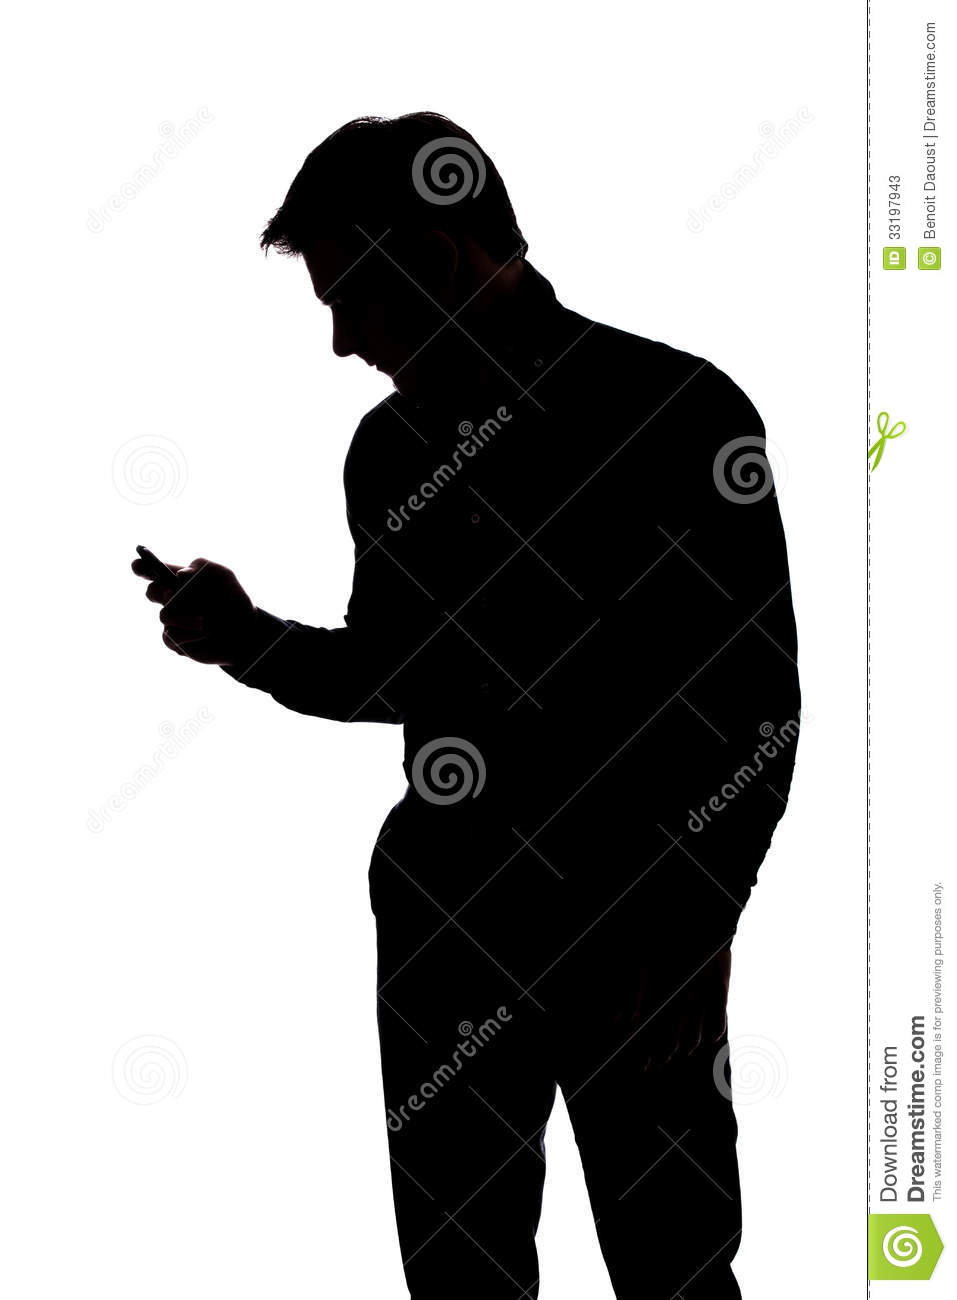 Man texting with one hand in silhouette isolated over white background ...